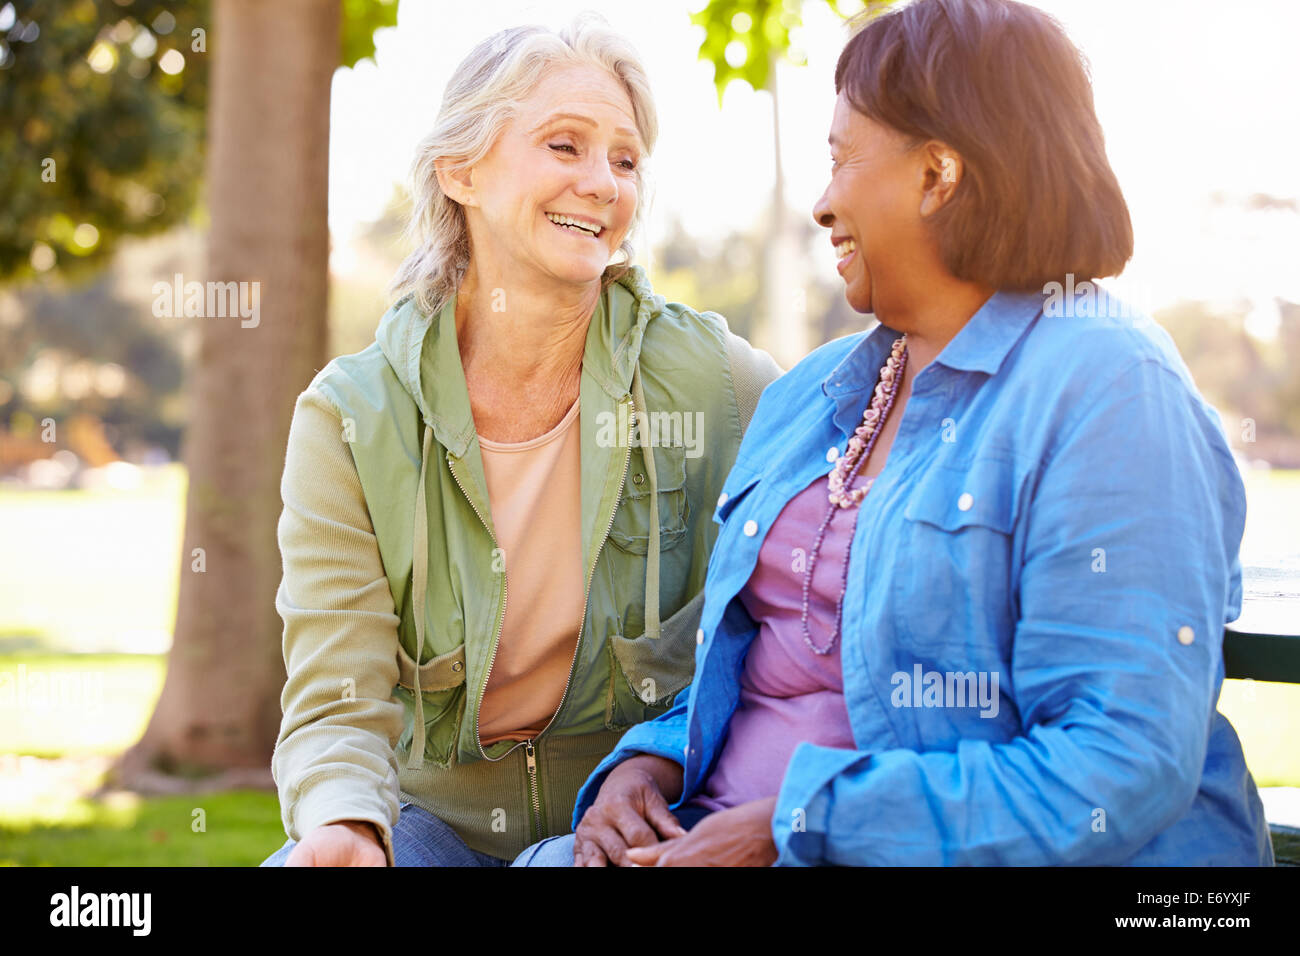 Two Senior Women Talking Outdoors Together - Stock Image